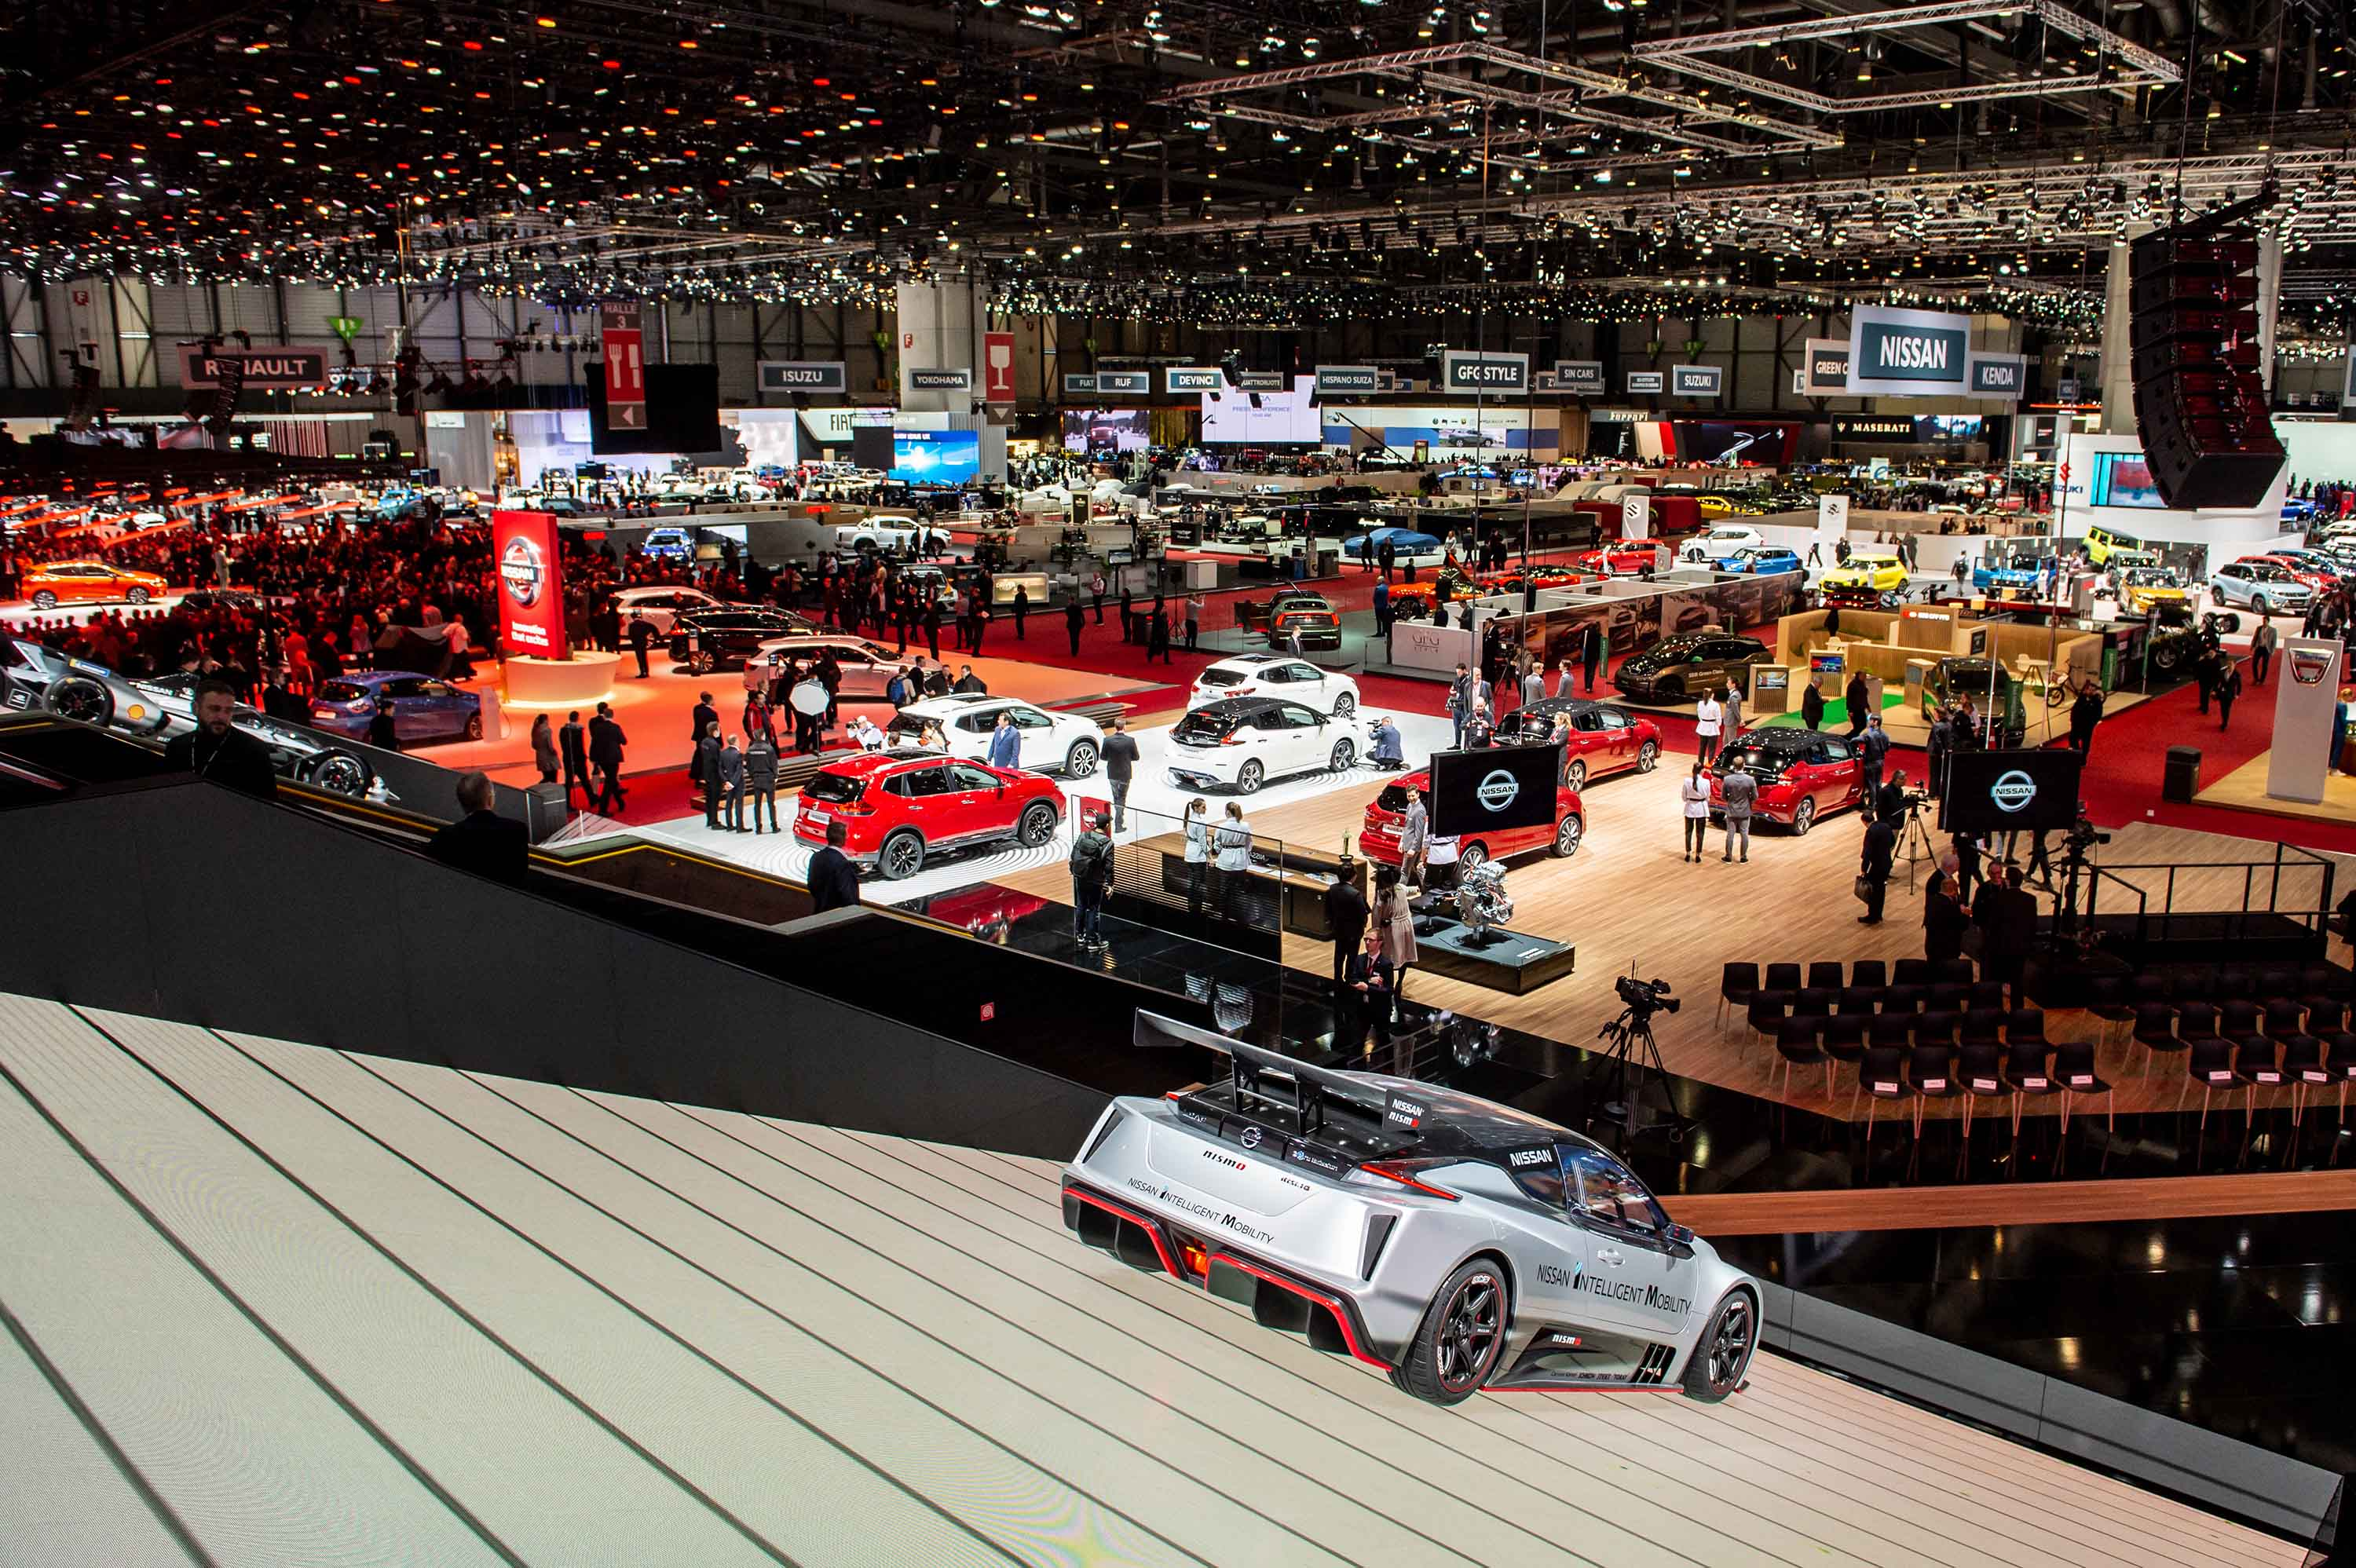 A view looking out over one section of the car show. There is another massive room full of exhibits behind the photographer.